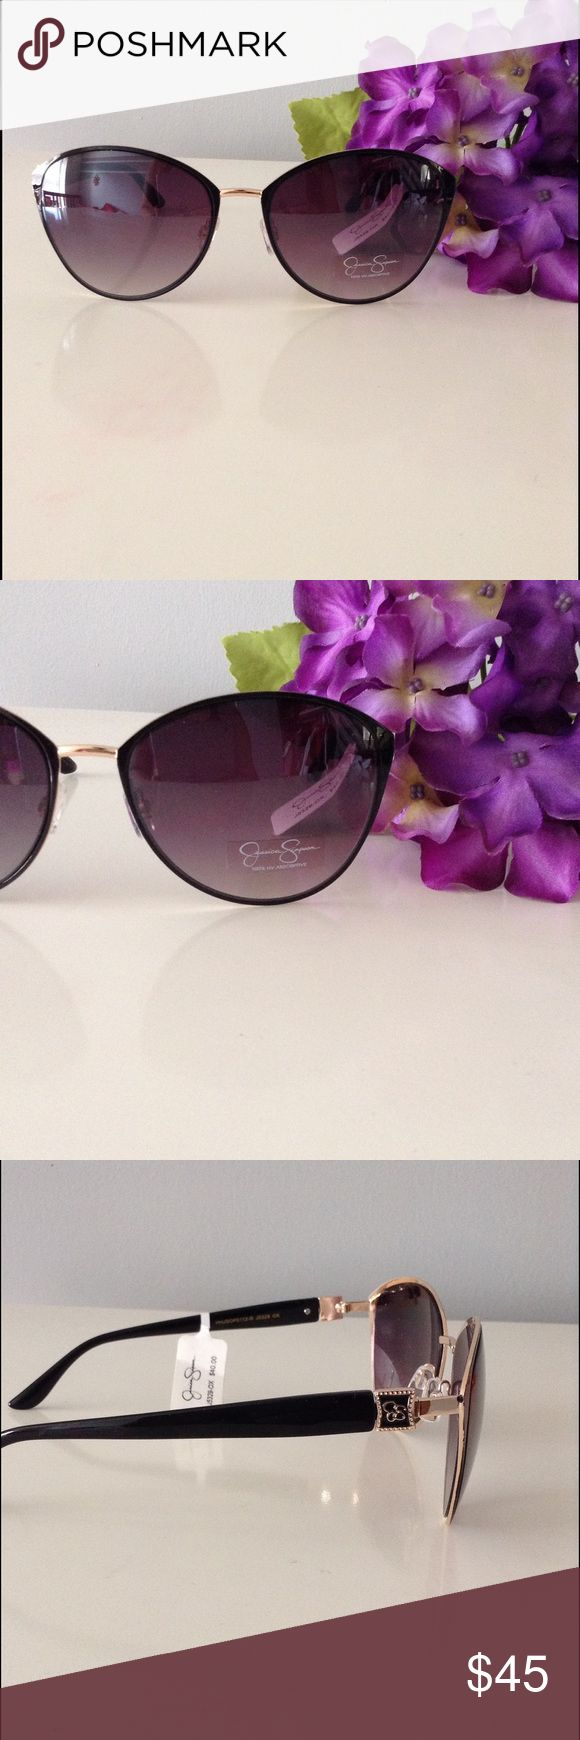 Chic Round High Bridge Sunglasses So chic oversized round shades. Brand new with tags gold hardware. Jessica Simpson Accessories Sunglasses